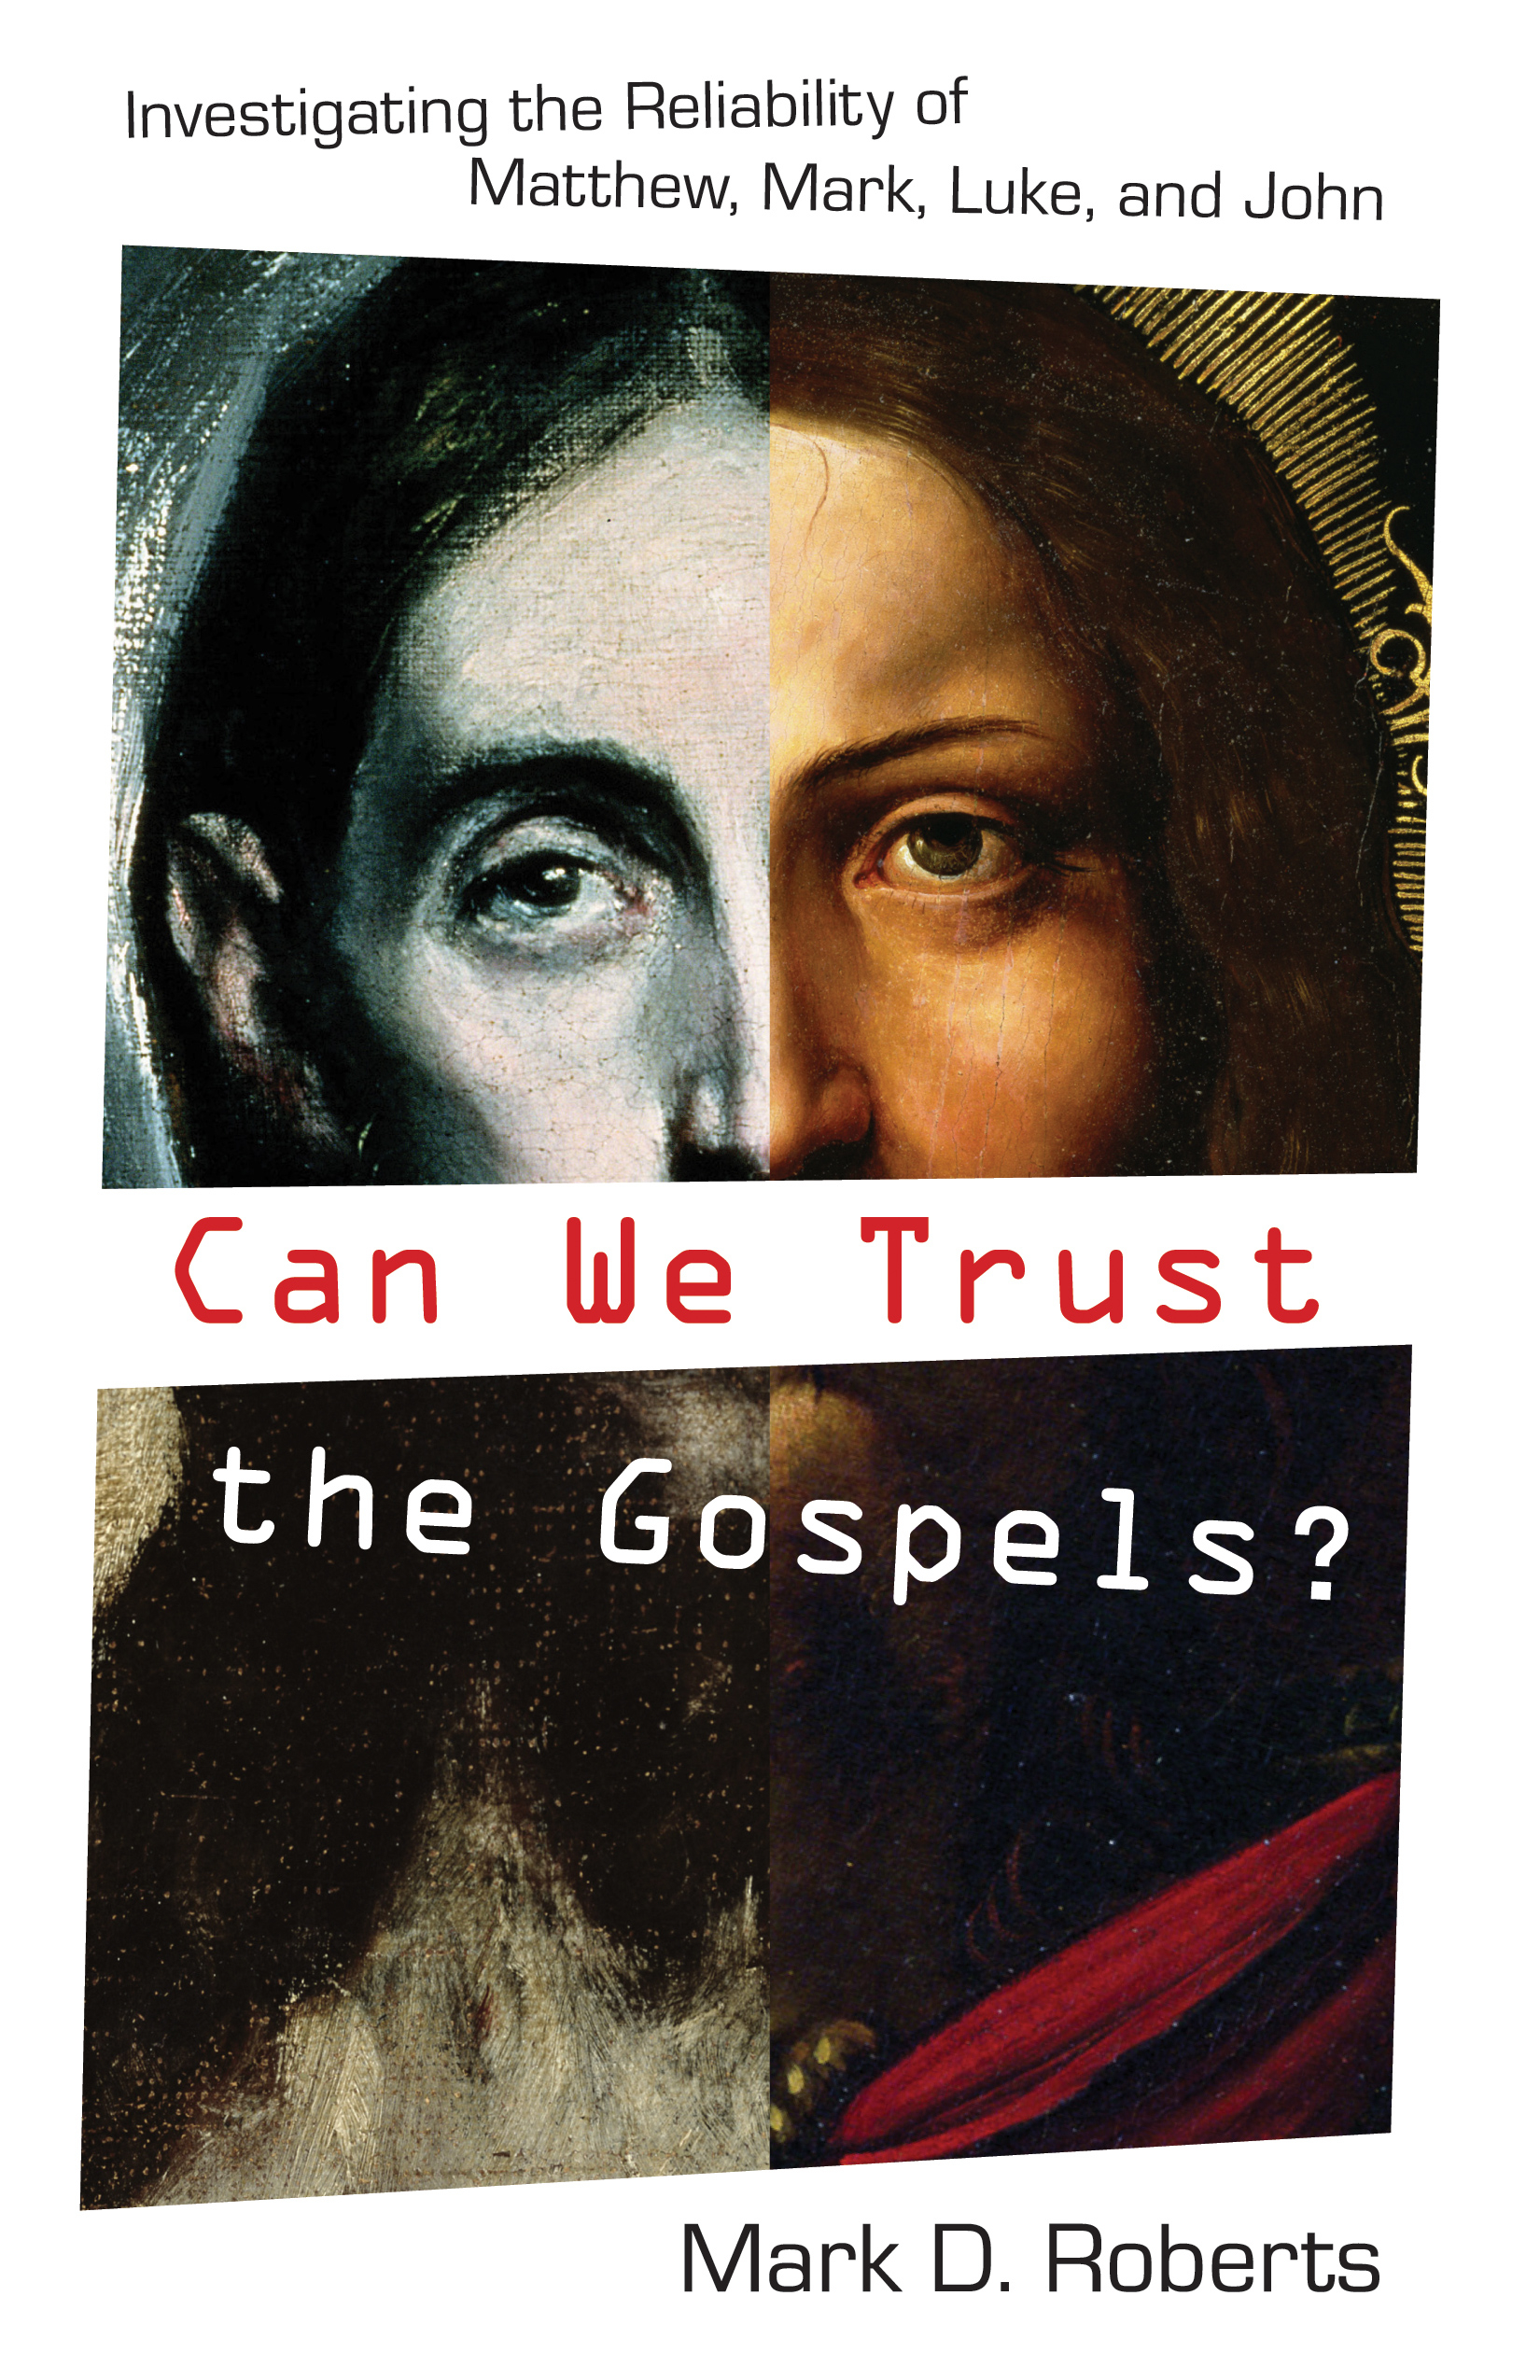 Can We Trust the Gospels? Investigating the Reliability of Matthew, Mark, Luke, and John